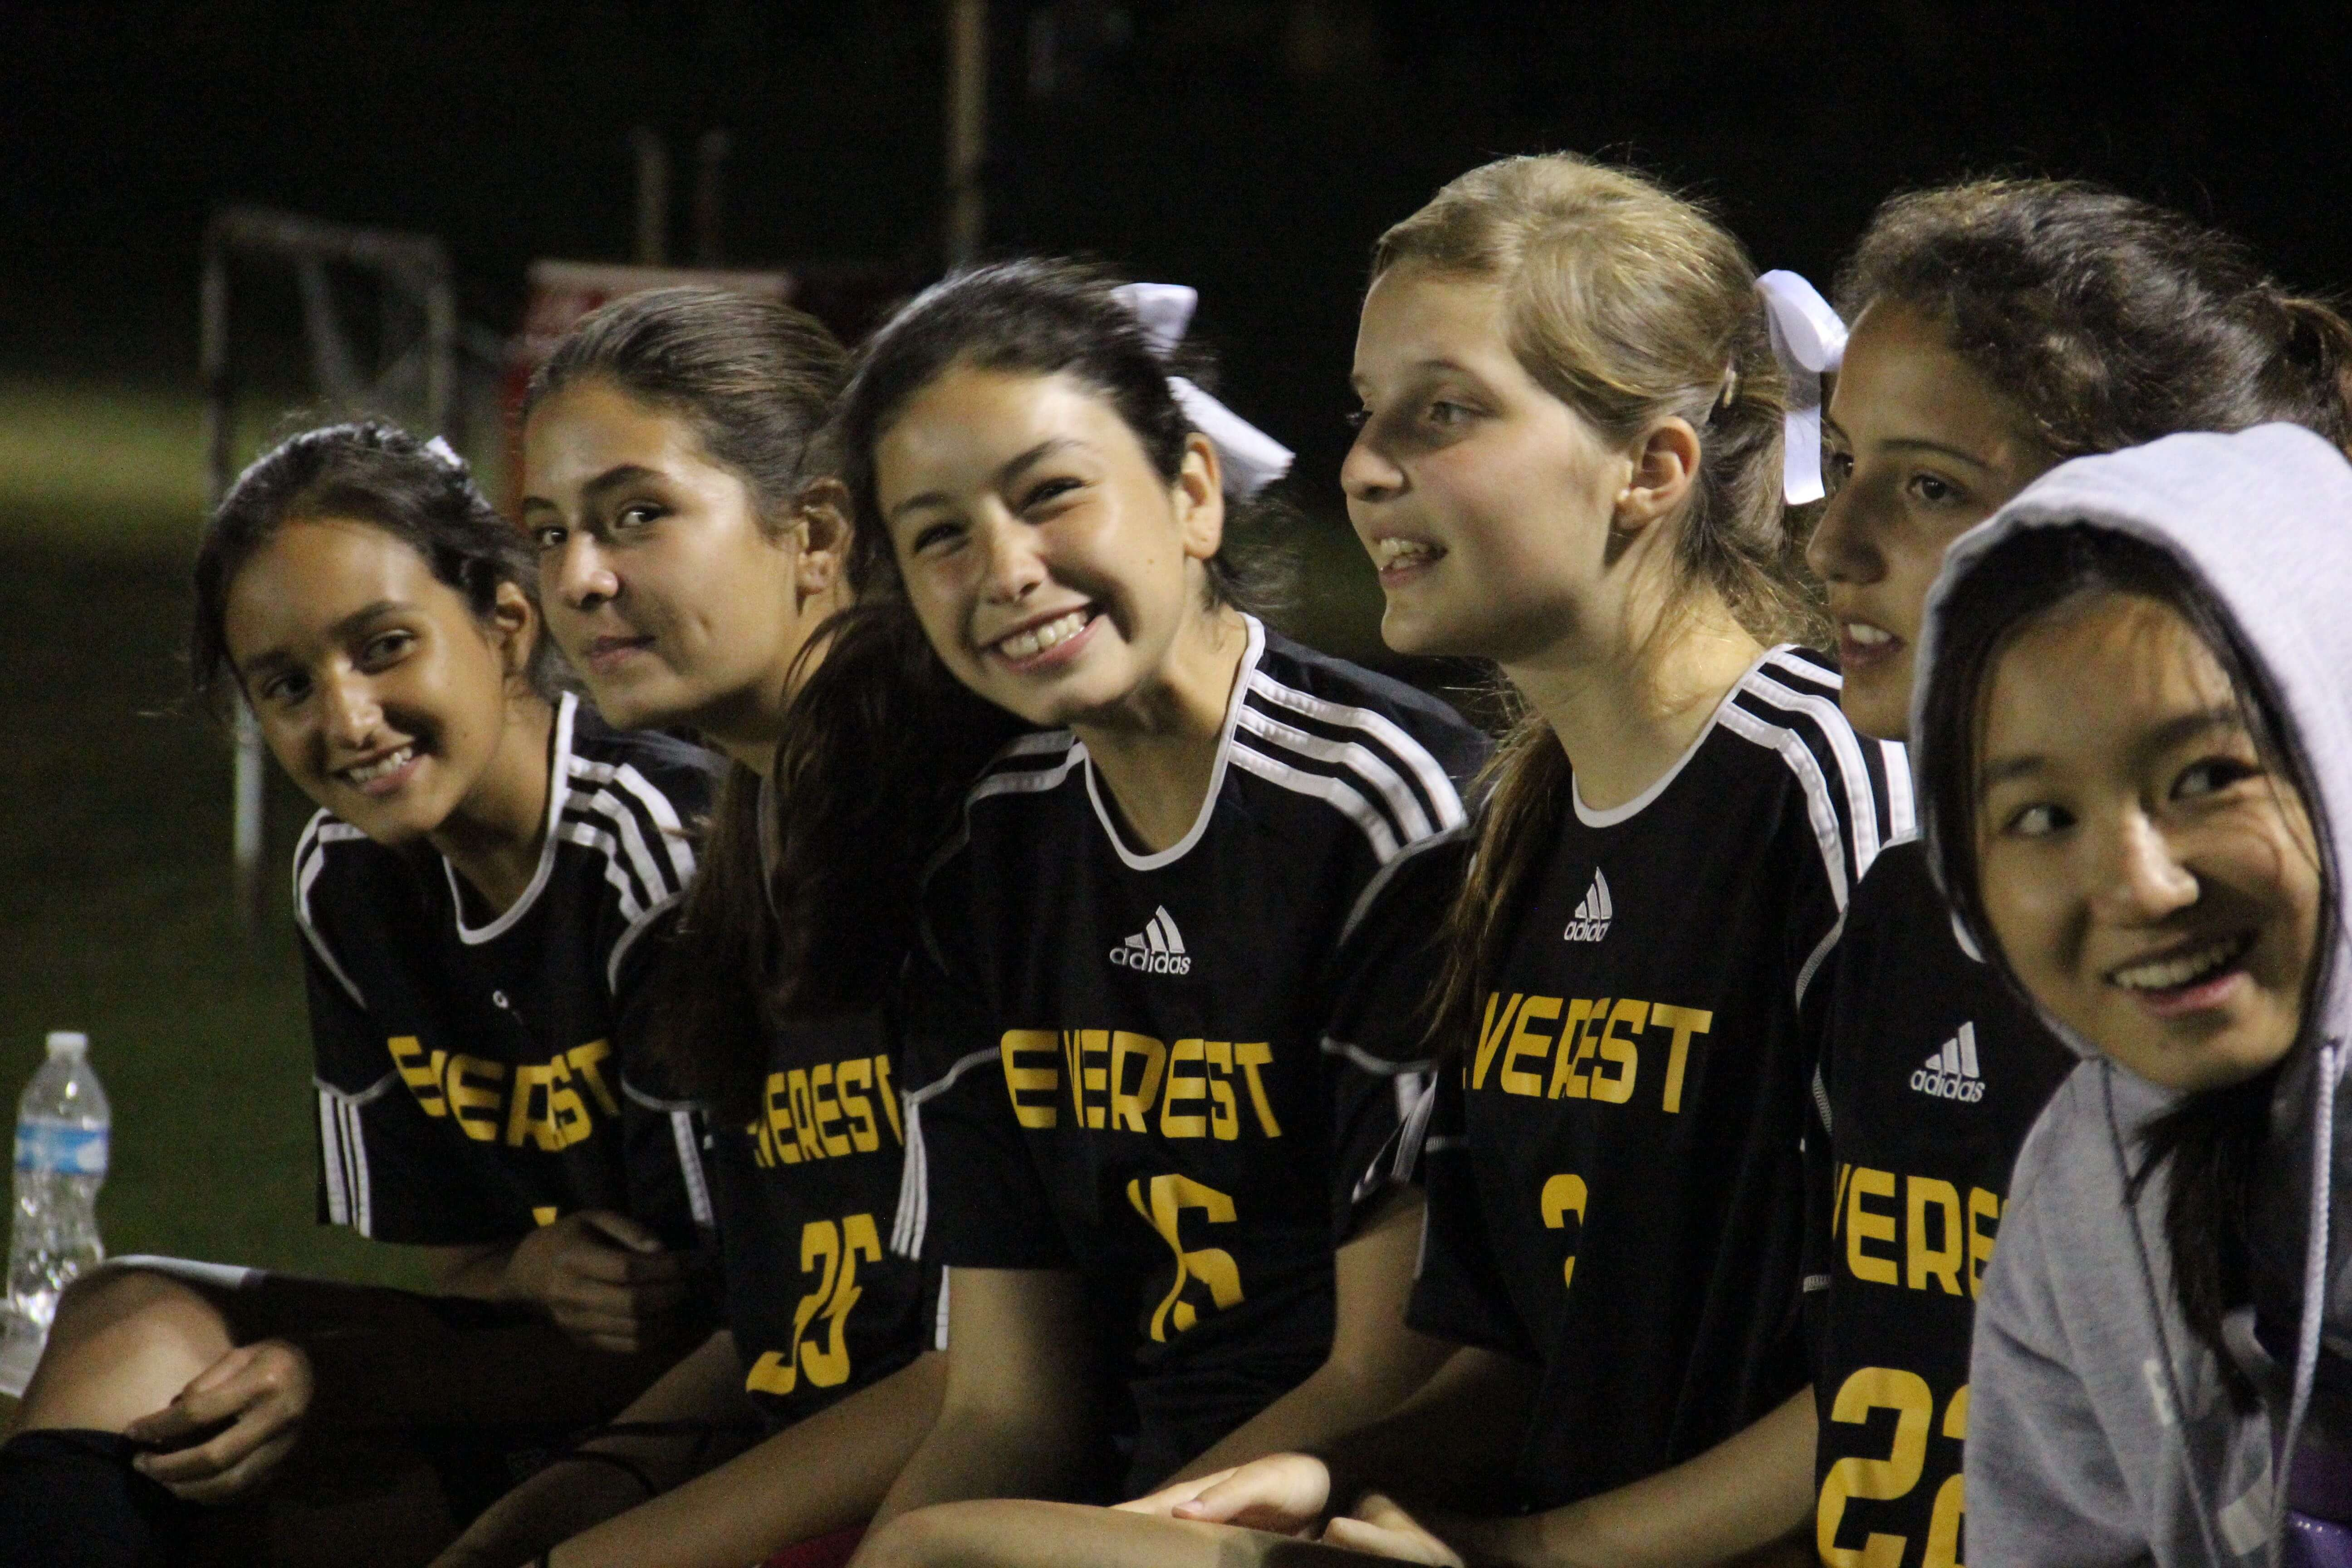 everest catholic girl personals Everest collegiate high school and academy, a catholic school in clarkston, is  one of only 50 private schools in the country and the only.